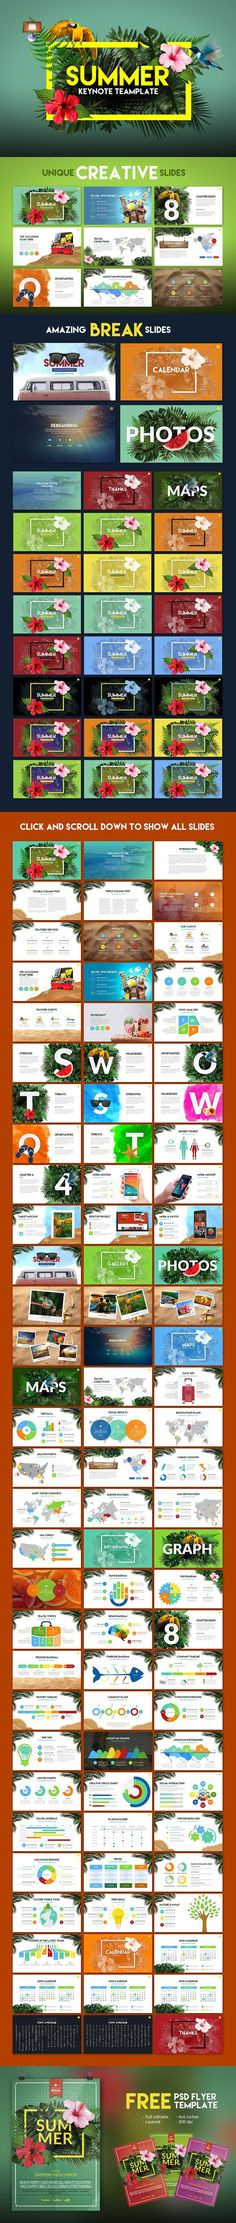 Mangalo Keynote Template  Presentation Templates Infographic And